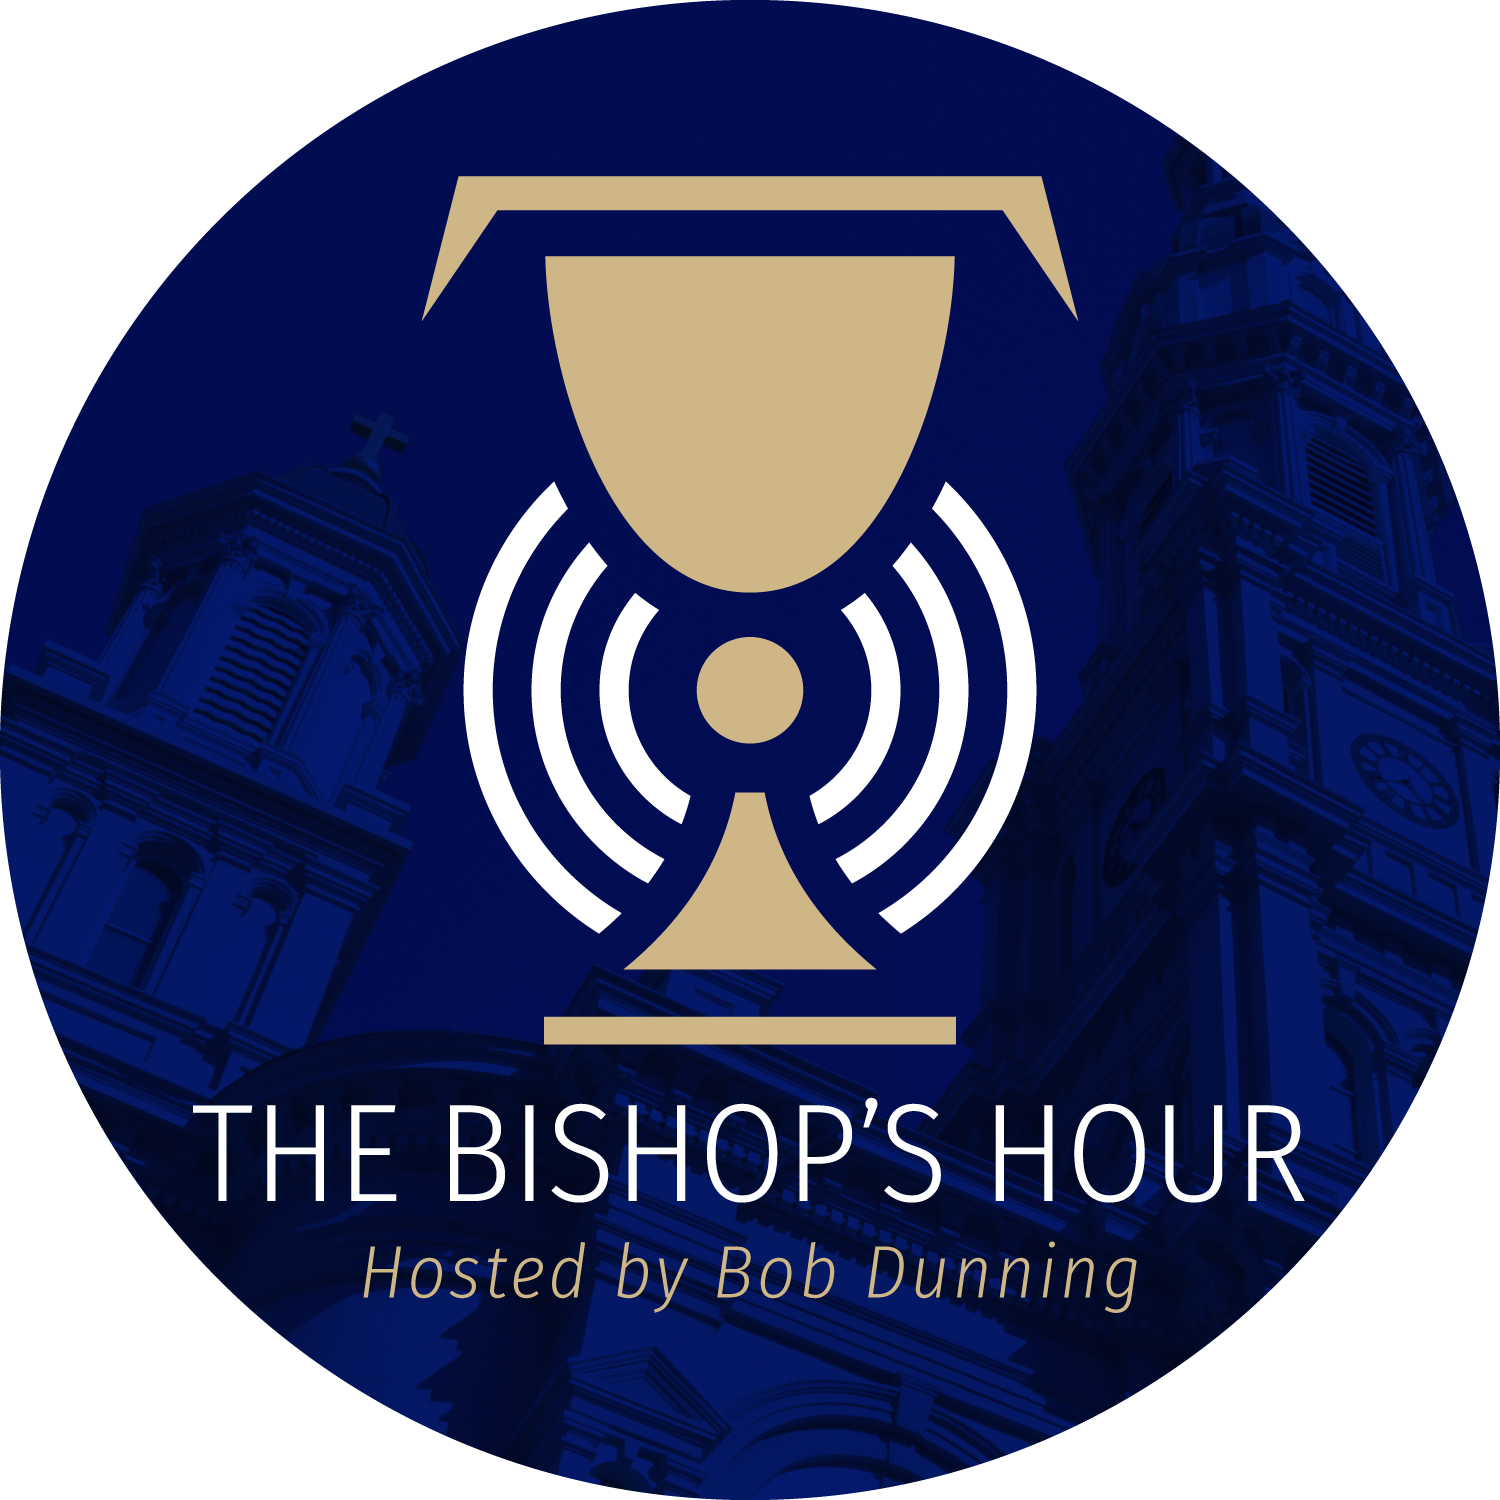 The Bishop's Hour logo